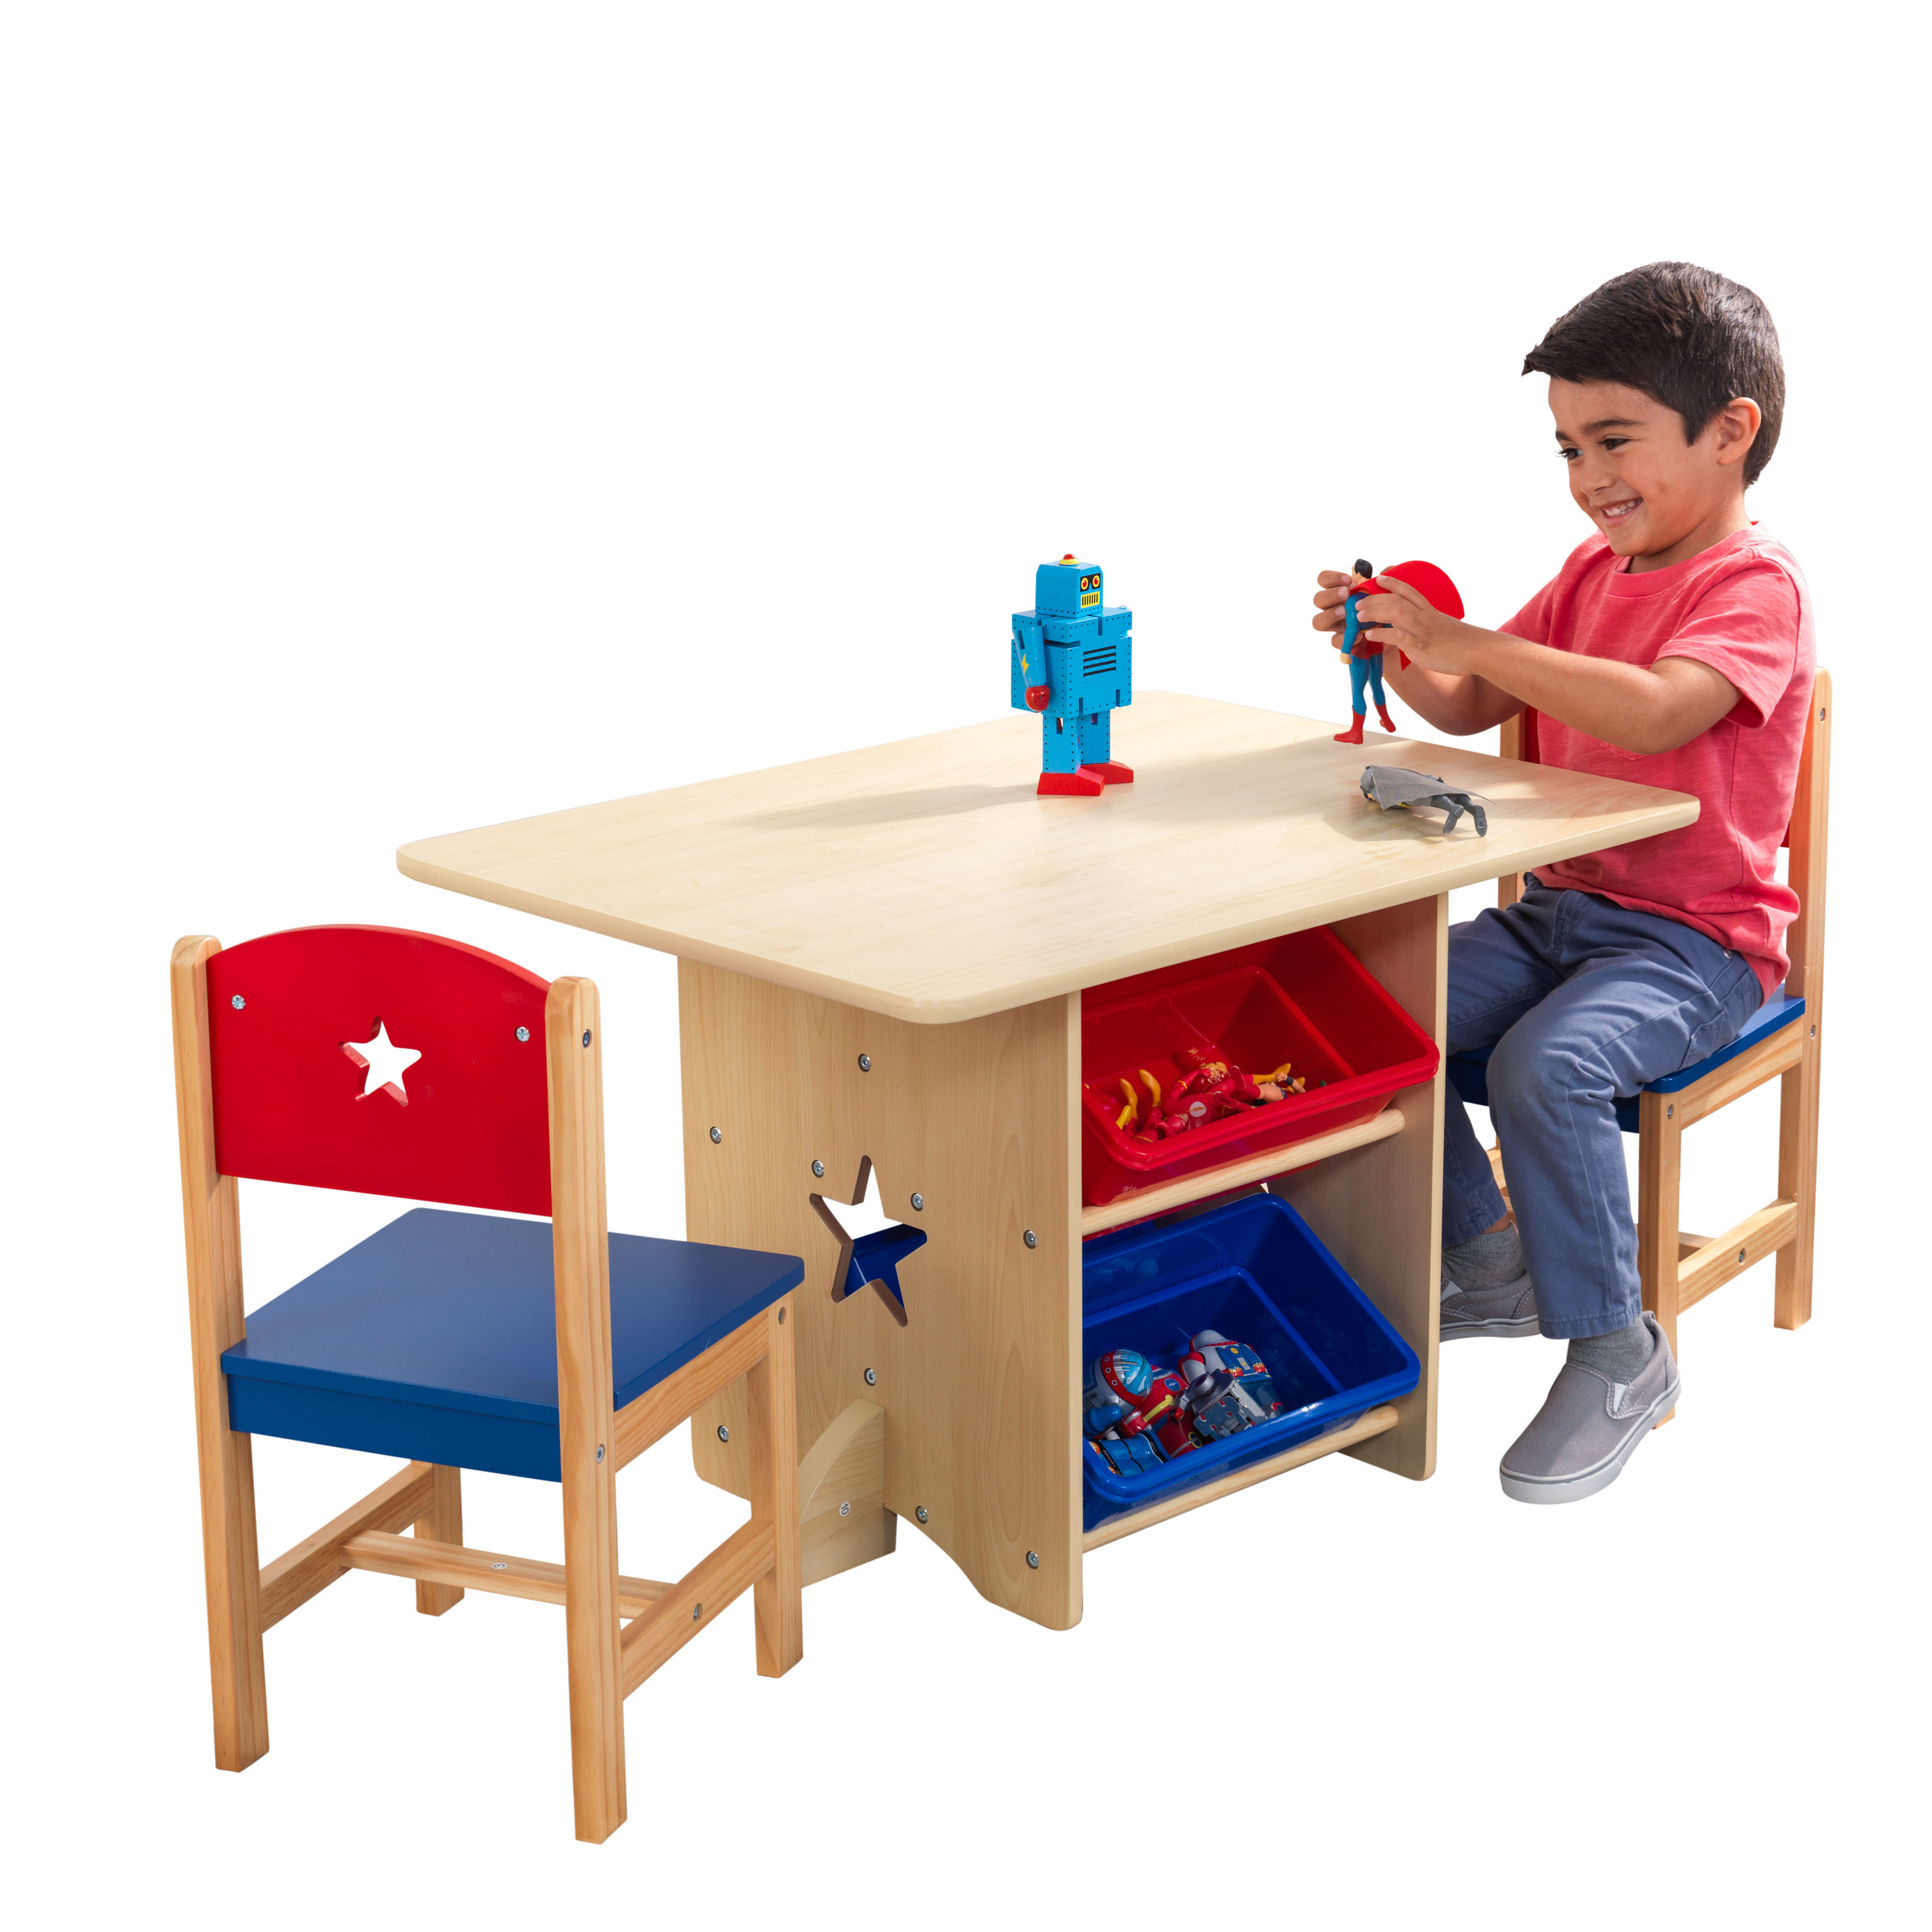 KidKraft Star Table & Chair Set